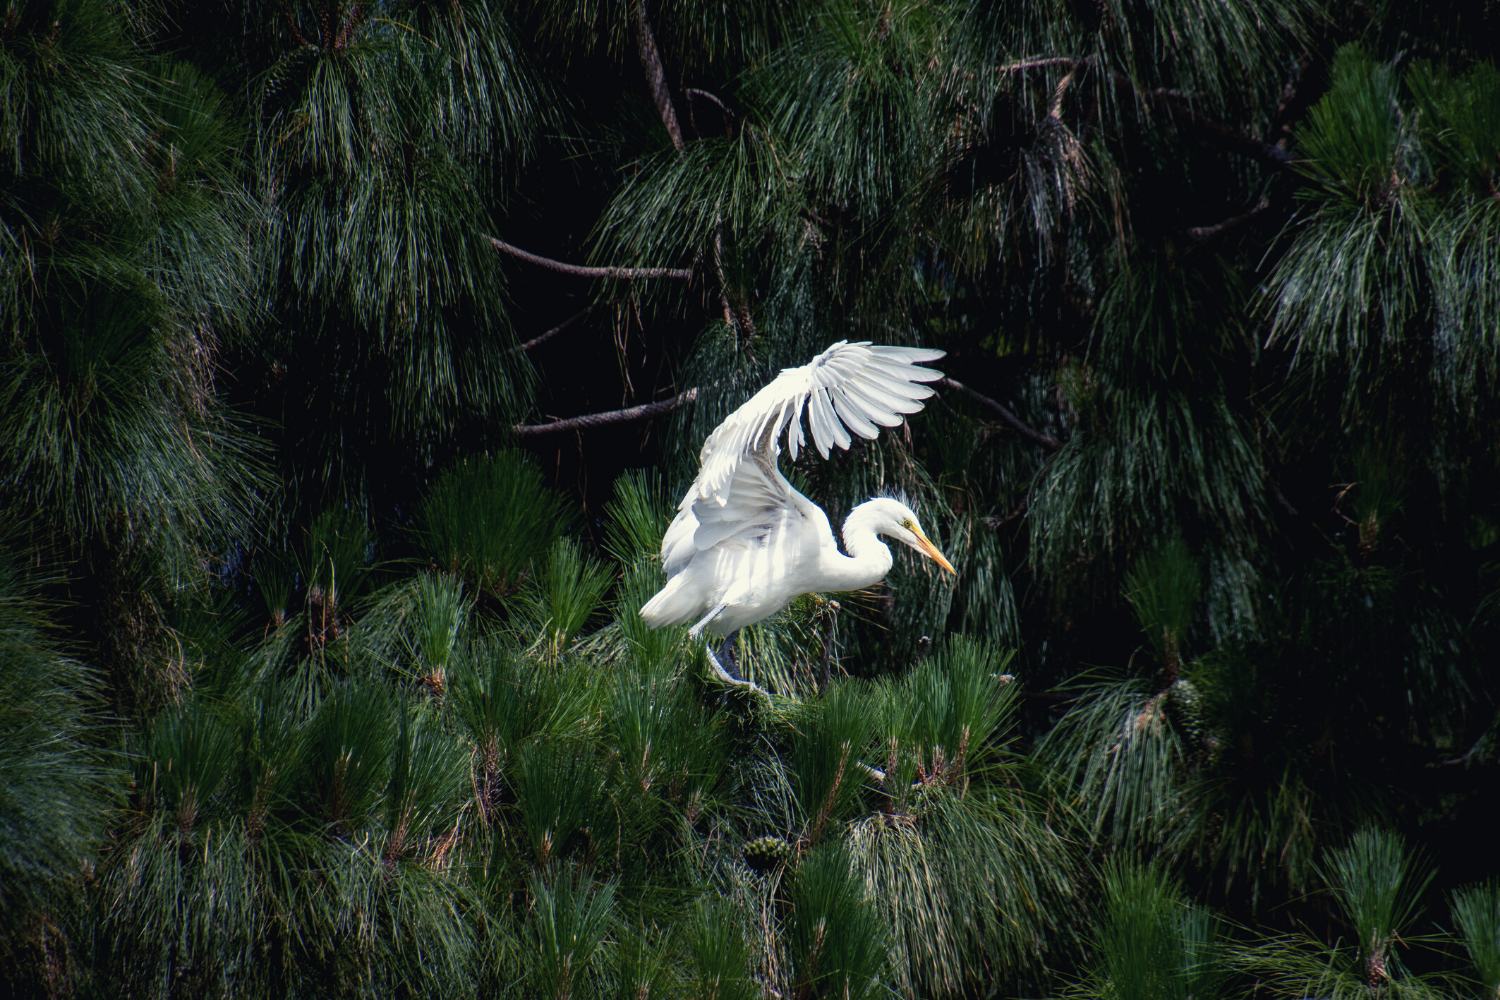 An egret taking off from a nest